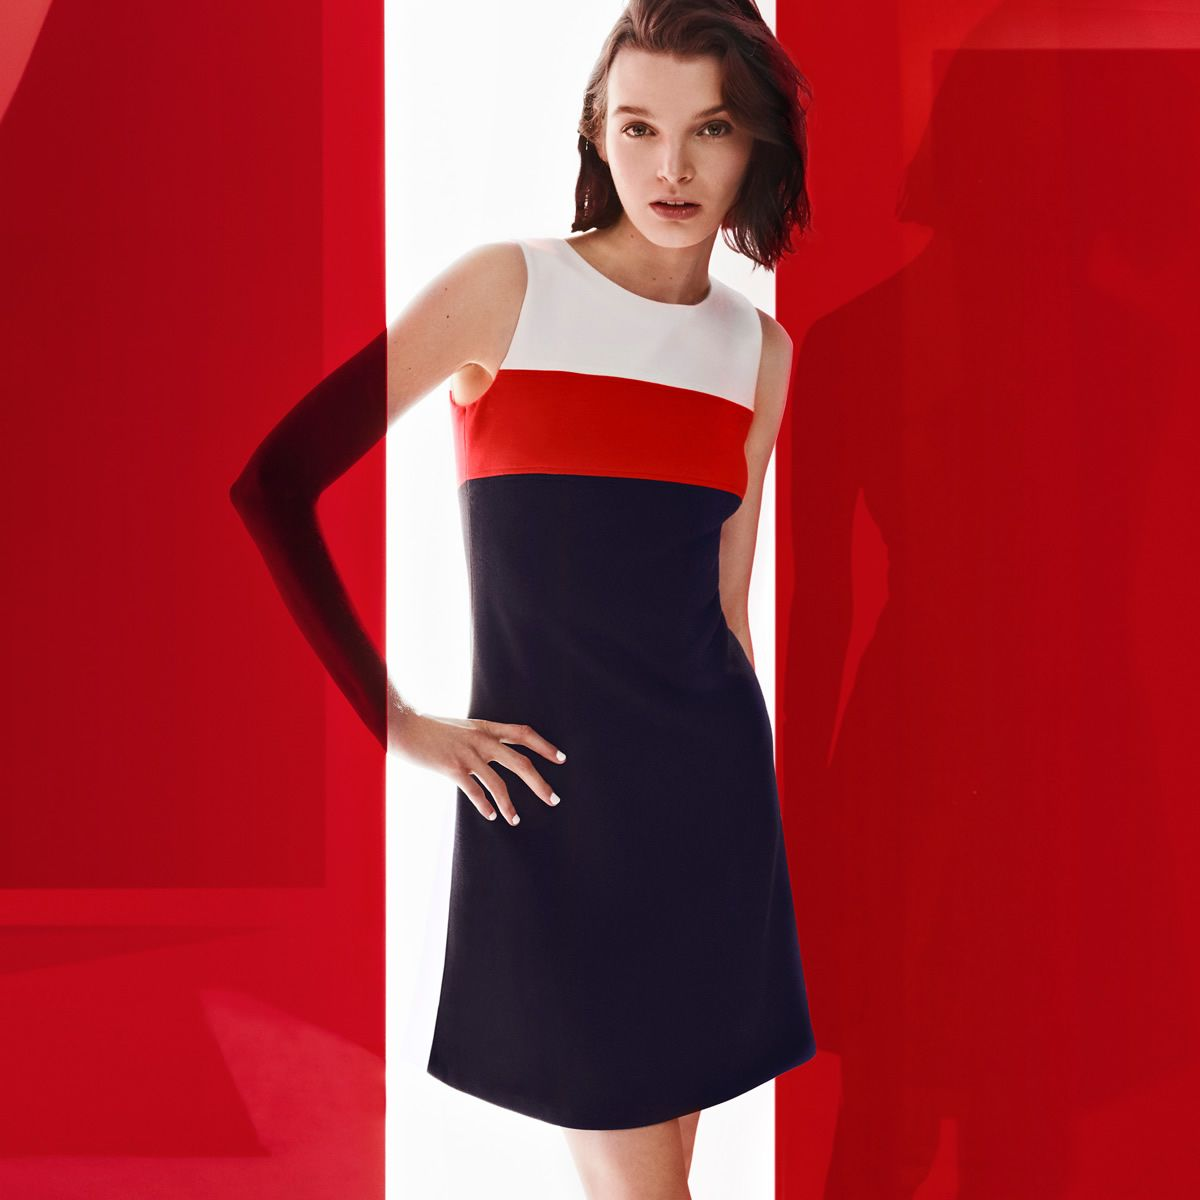 20743a9a896df1 Tommy Hilfiger Dresses for Women - Macy's